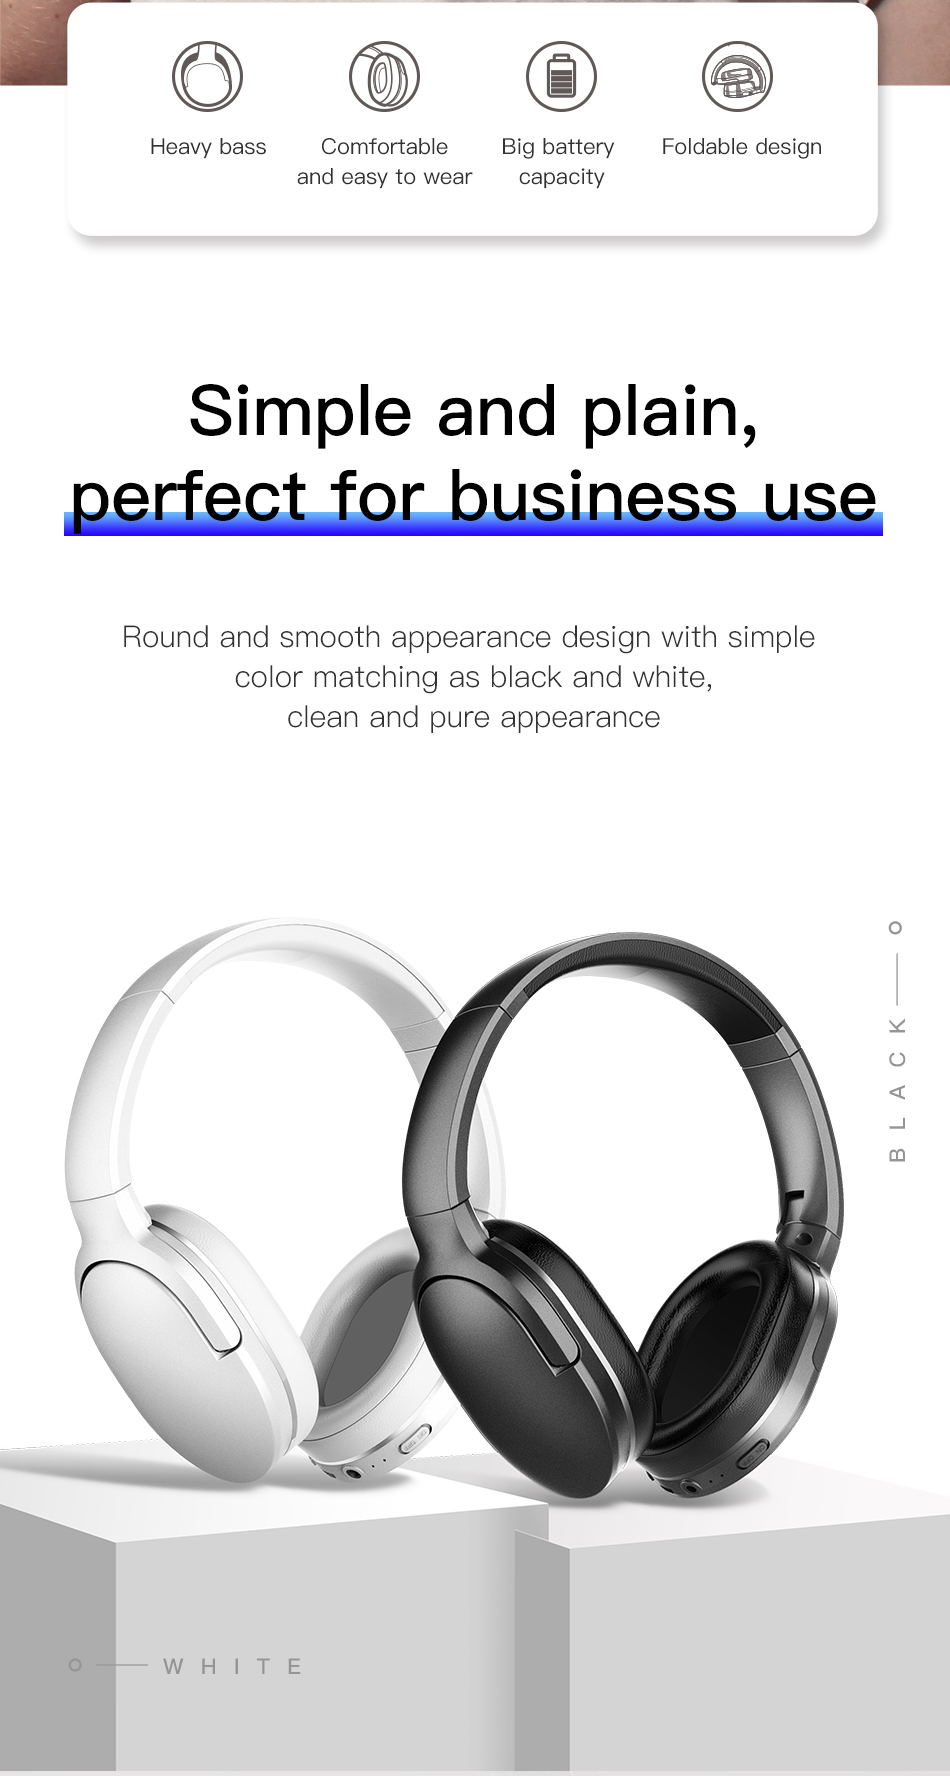 Baseus D02 Foldable Wireless Headphone Presents More Beautiful Sound